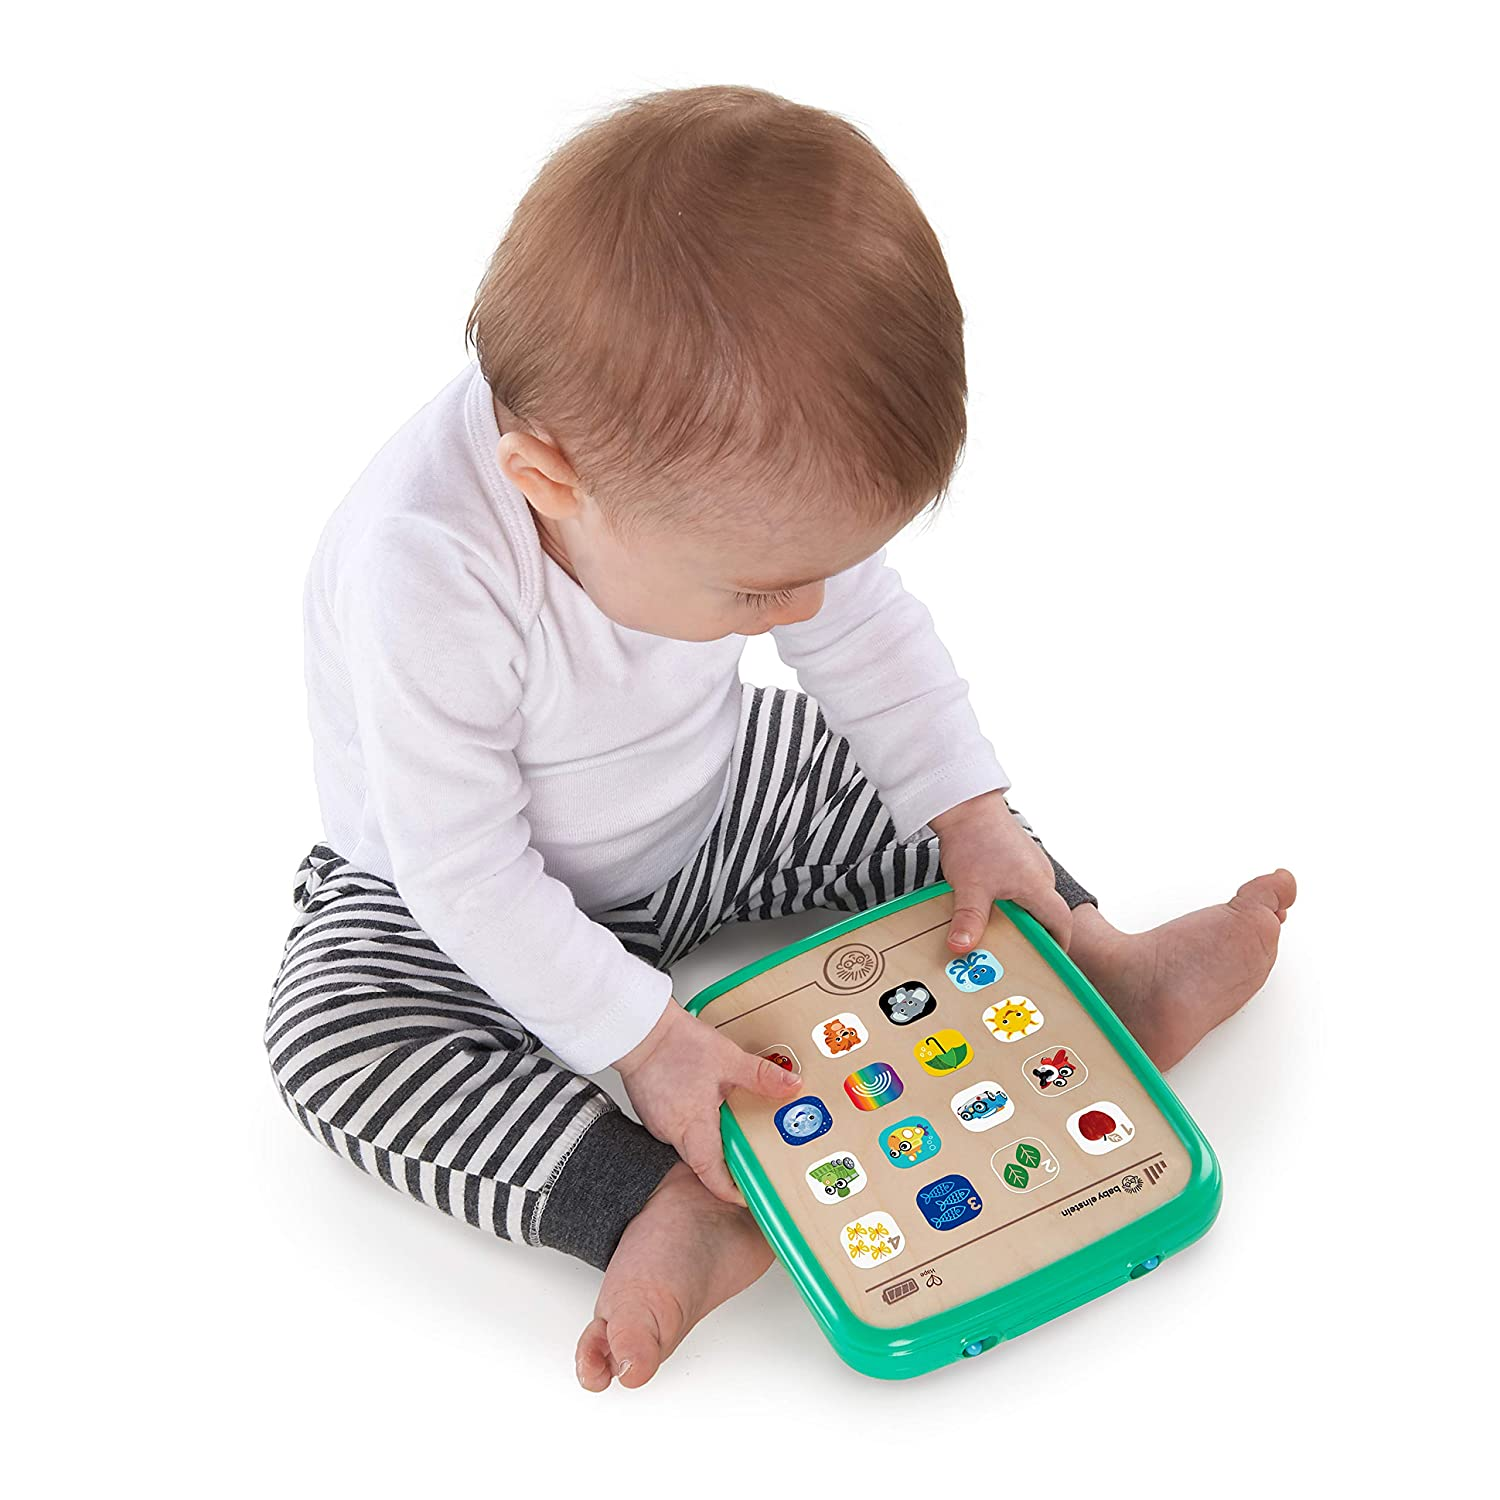 6 Months Baby Einstein Magic Touch Curiosity Tablet Wooden Musical Toy